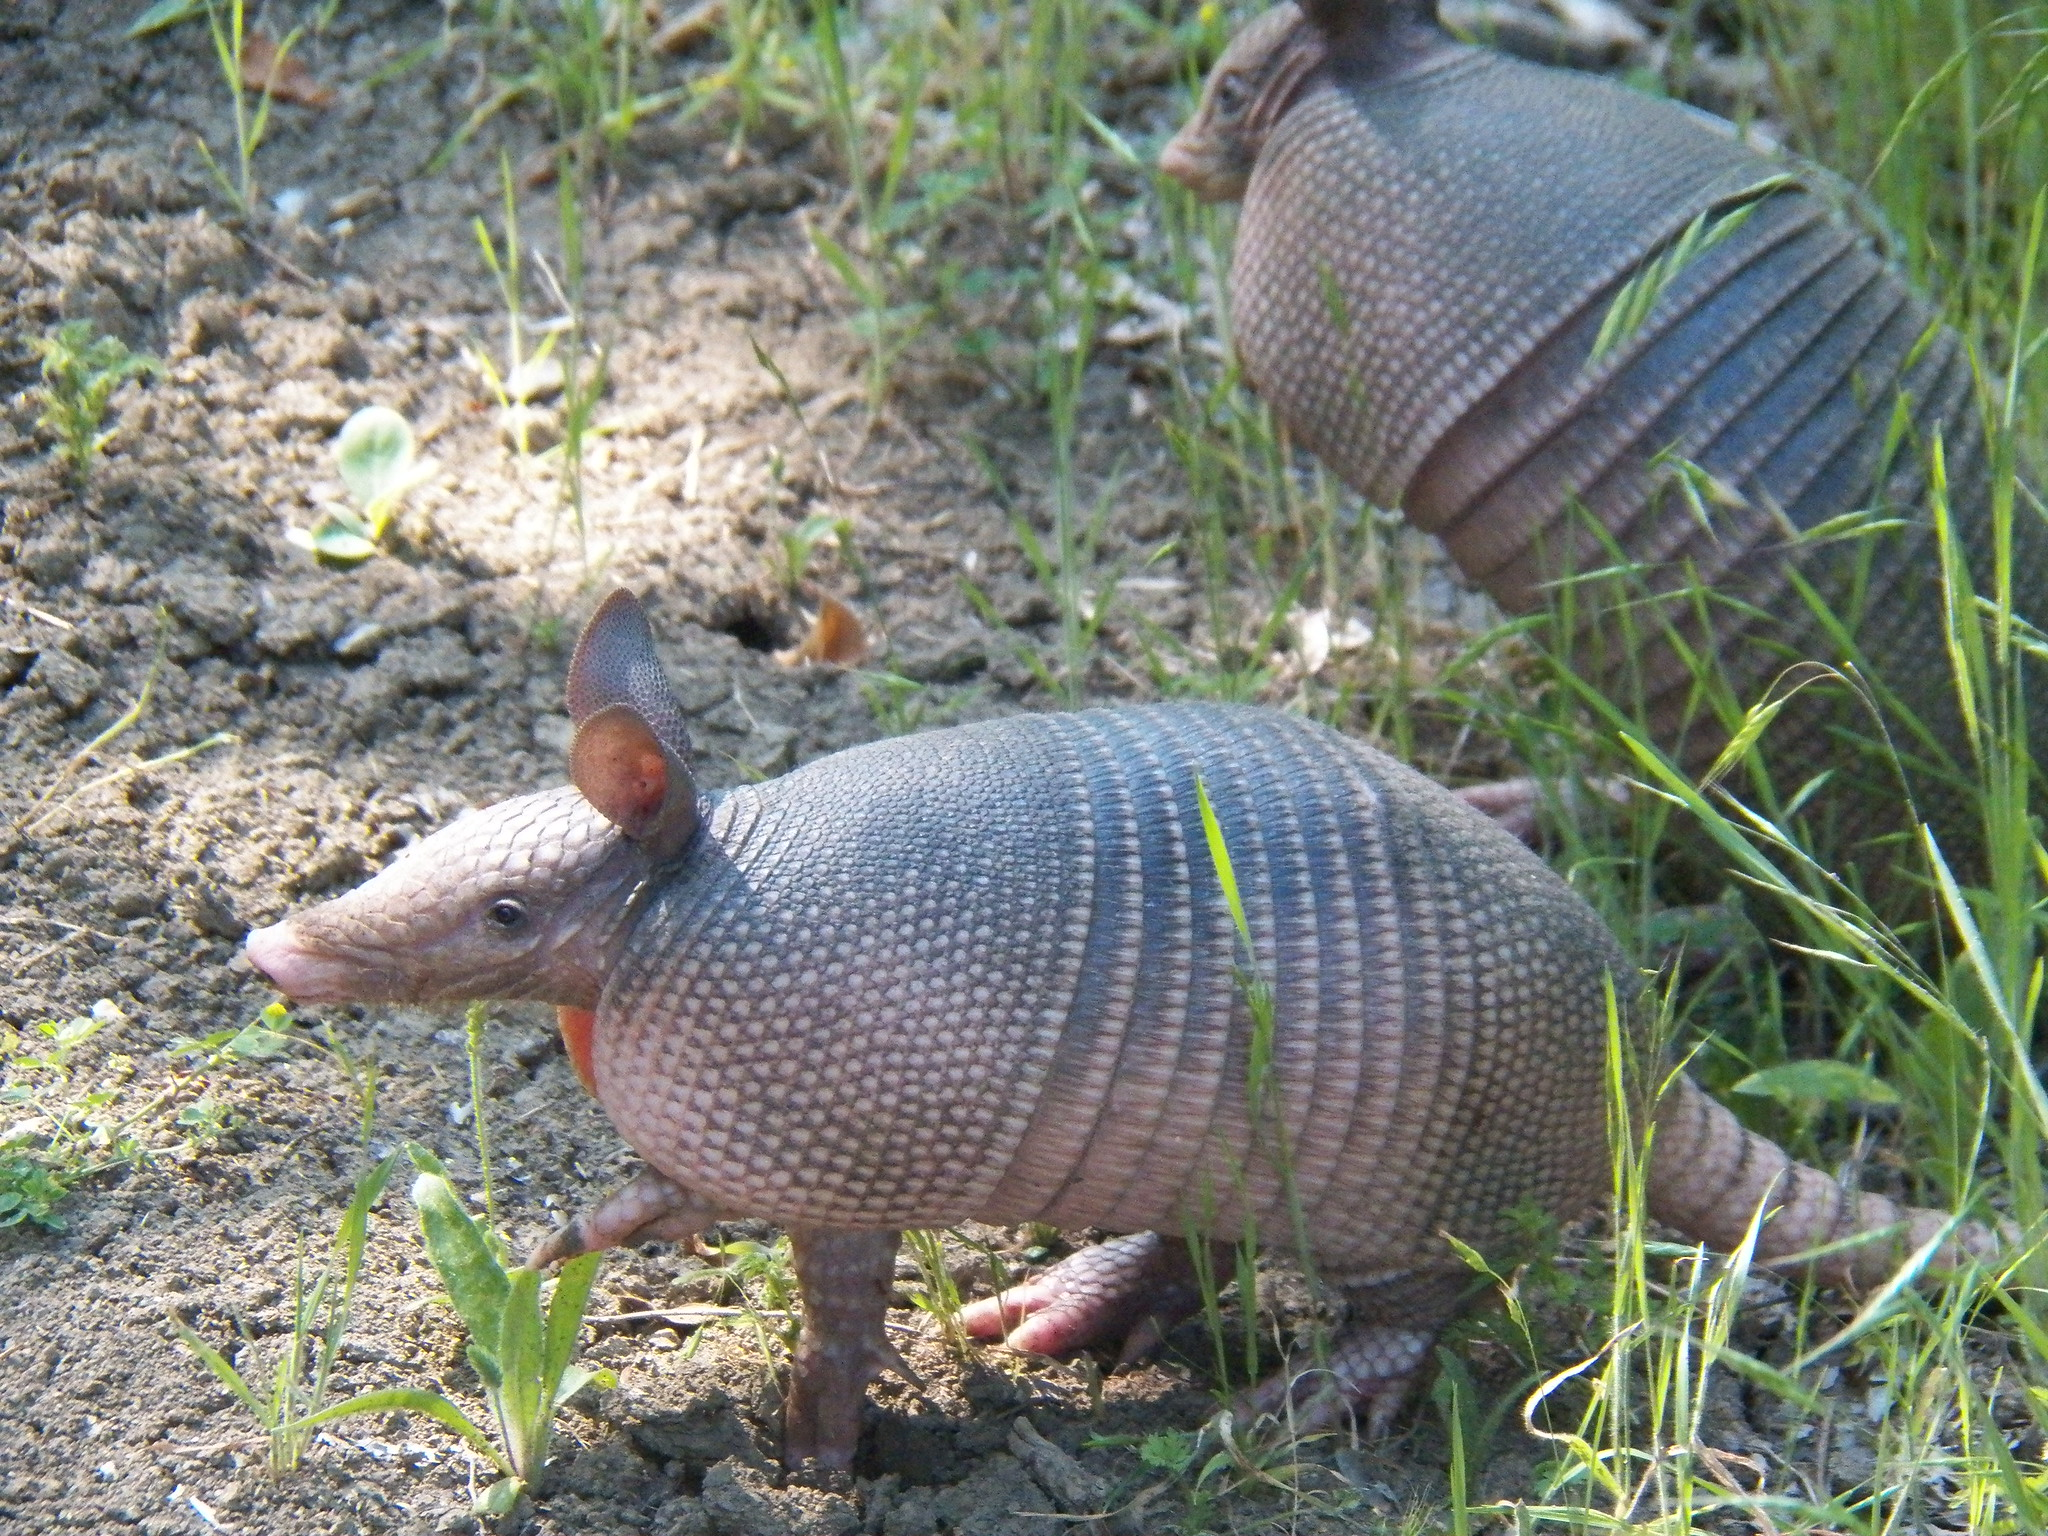 A photo of a nine-banded armadillo taken by    Flickr user Robert Nunnally